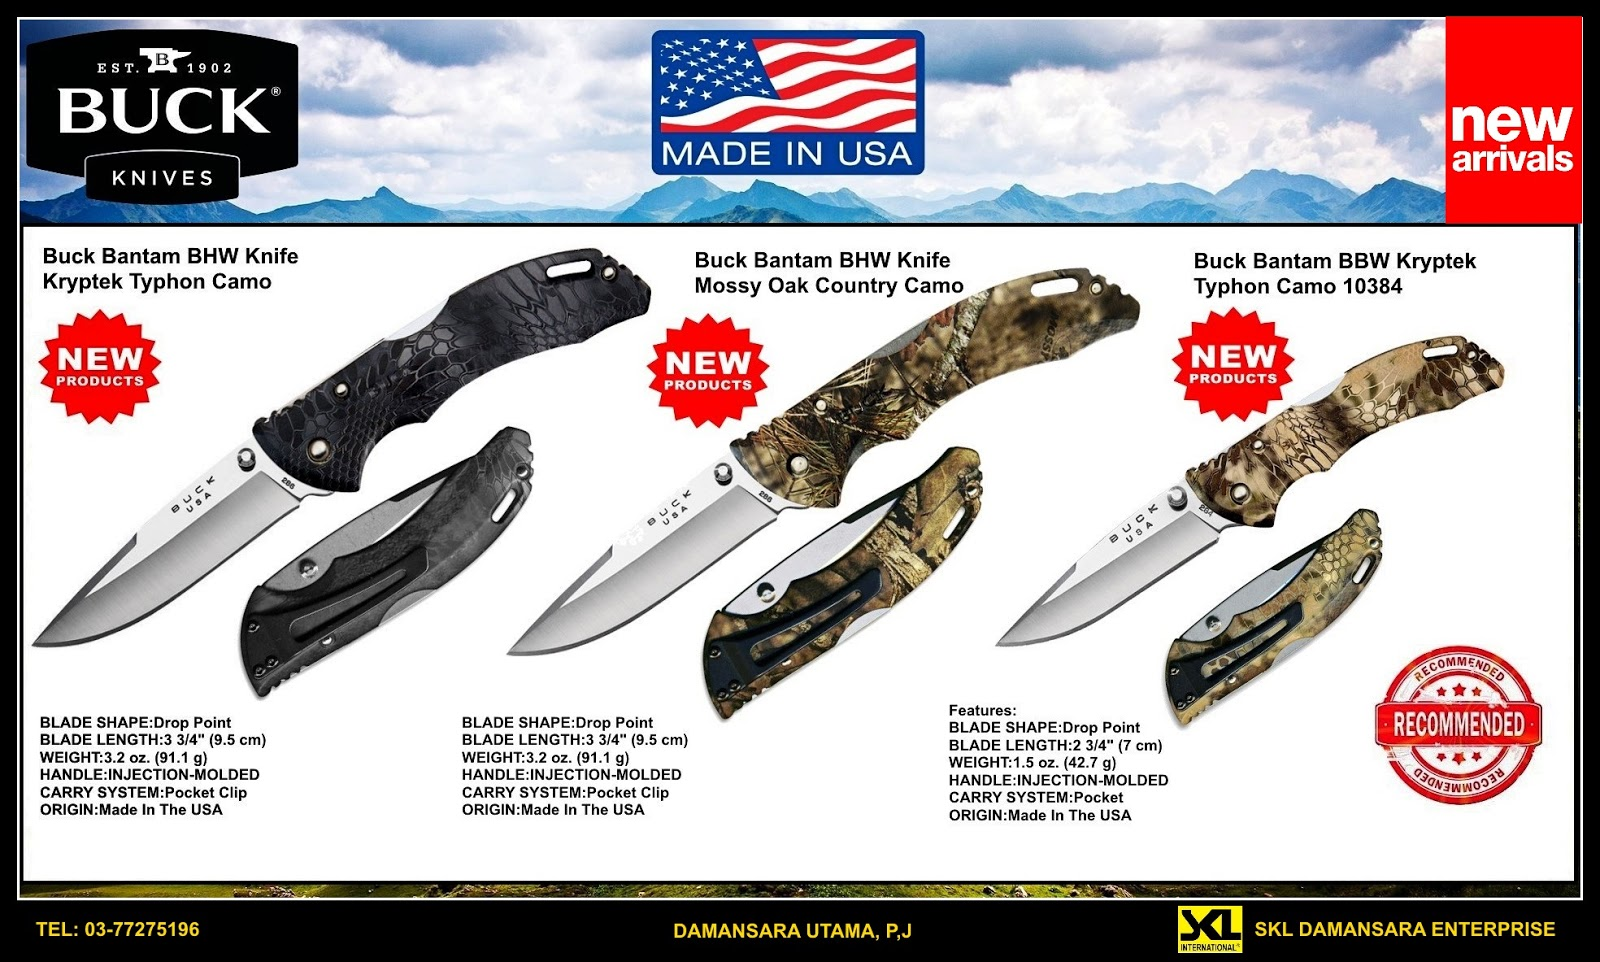 Buck Bantam Foldable Knives now available at our Damansara Utama outlet!!!